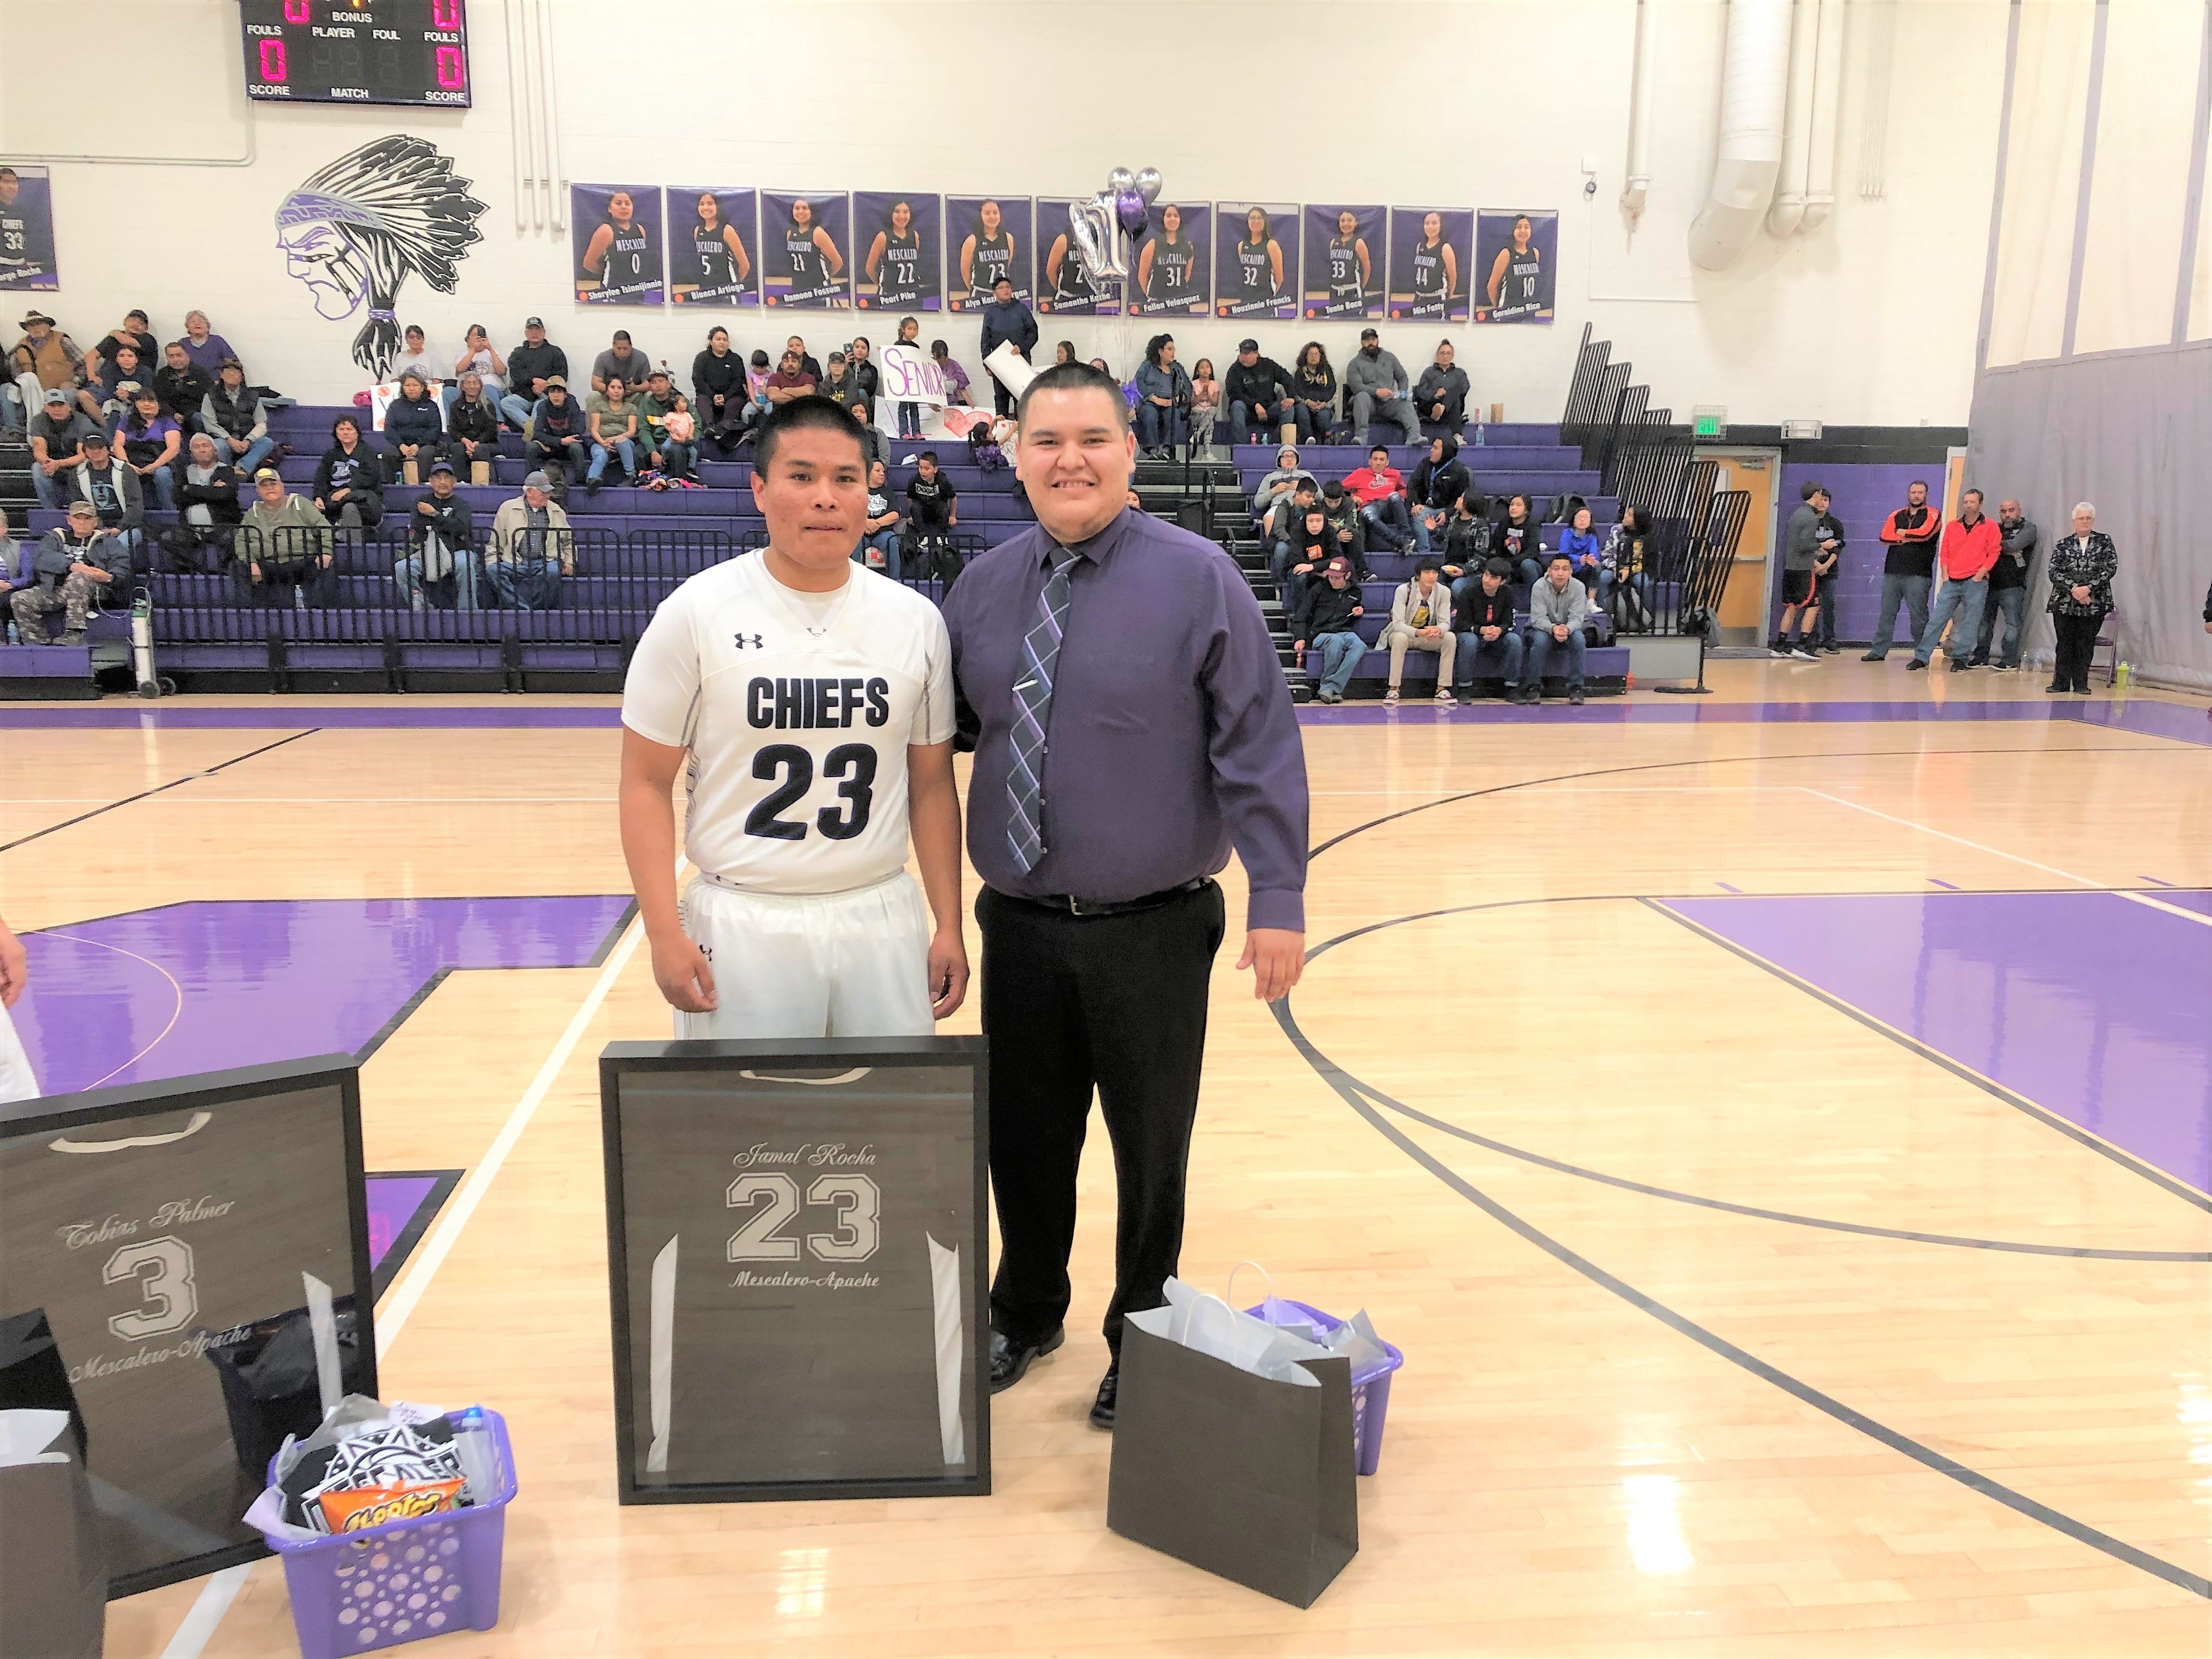 Jamal Rocha, #23 and Coach Kane of the Mescalero Apache Varsity Basketball team, show off their school spirit and pride next to a newly framed jersey.